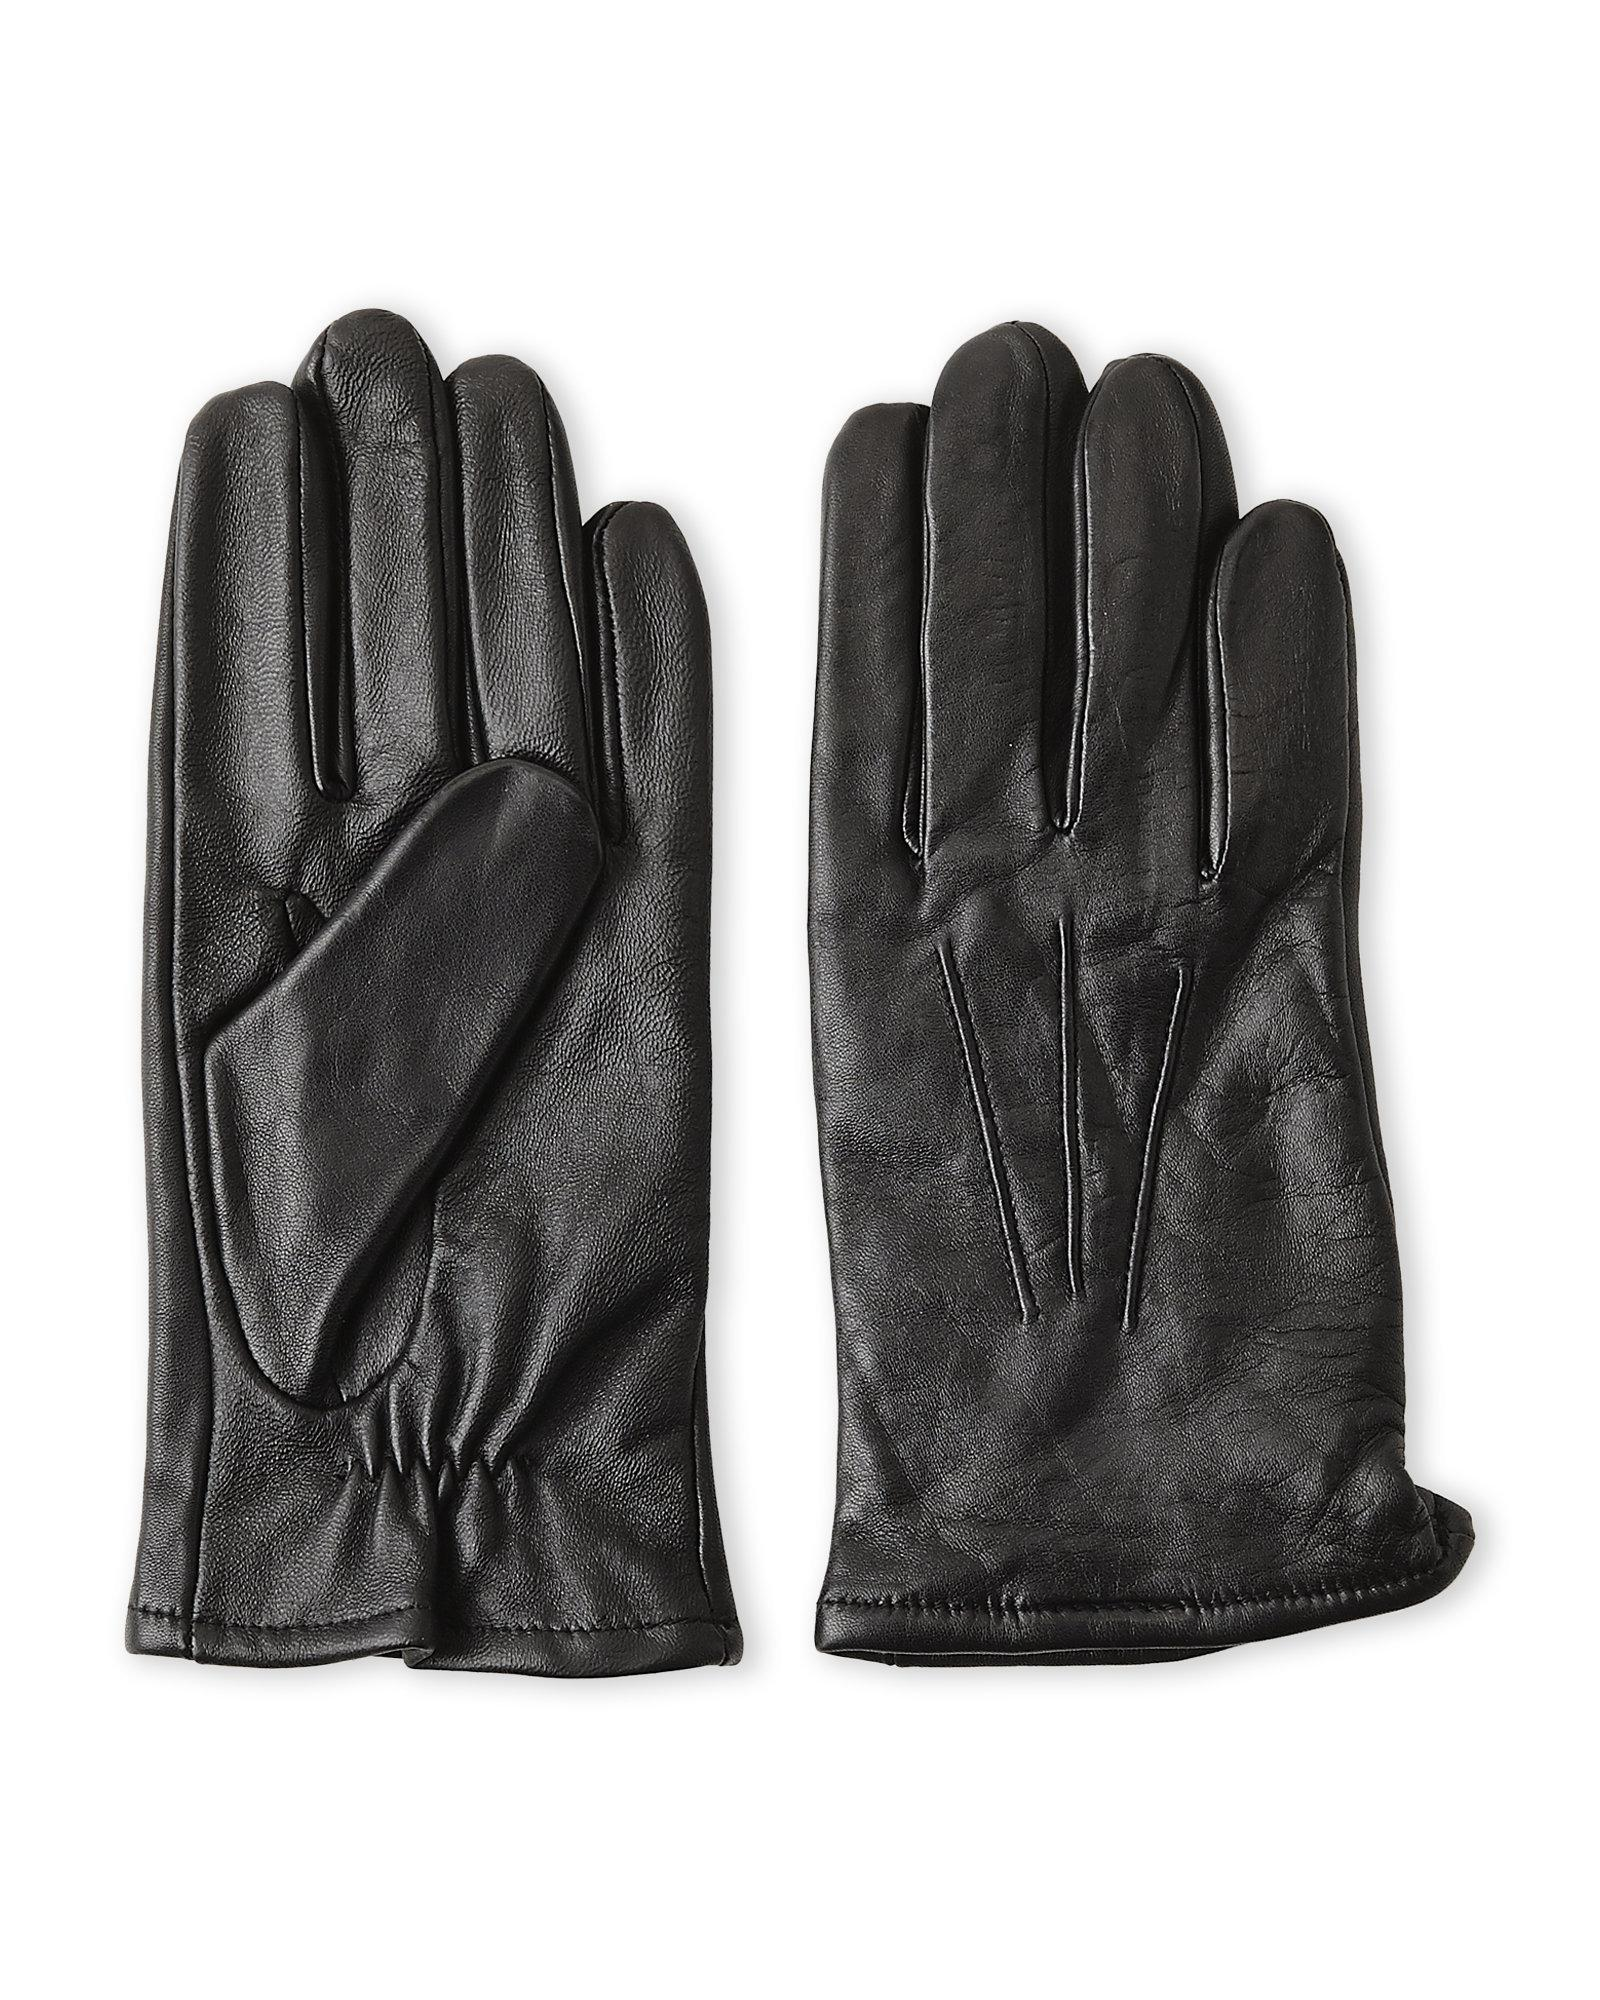 91634dab31974 Gallery. Previously sold at: Century 21 · Men's Leather Gloves ...